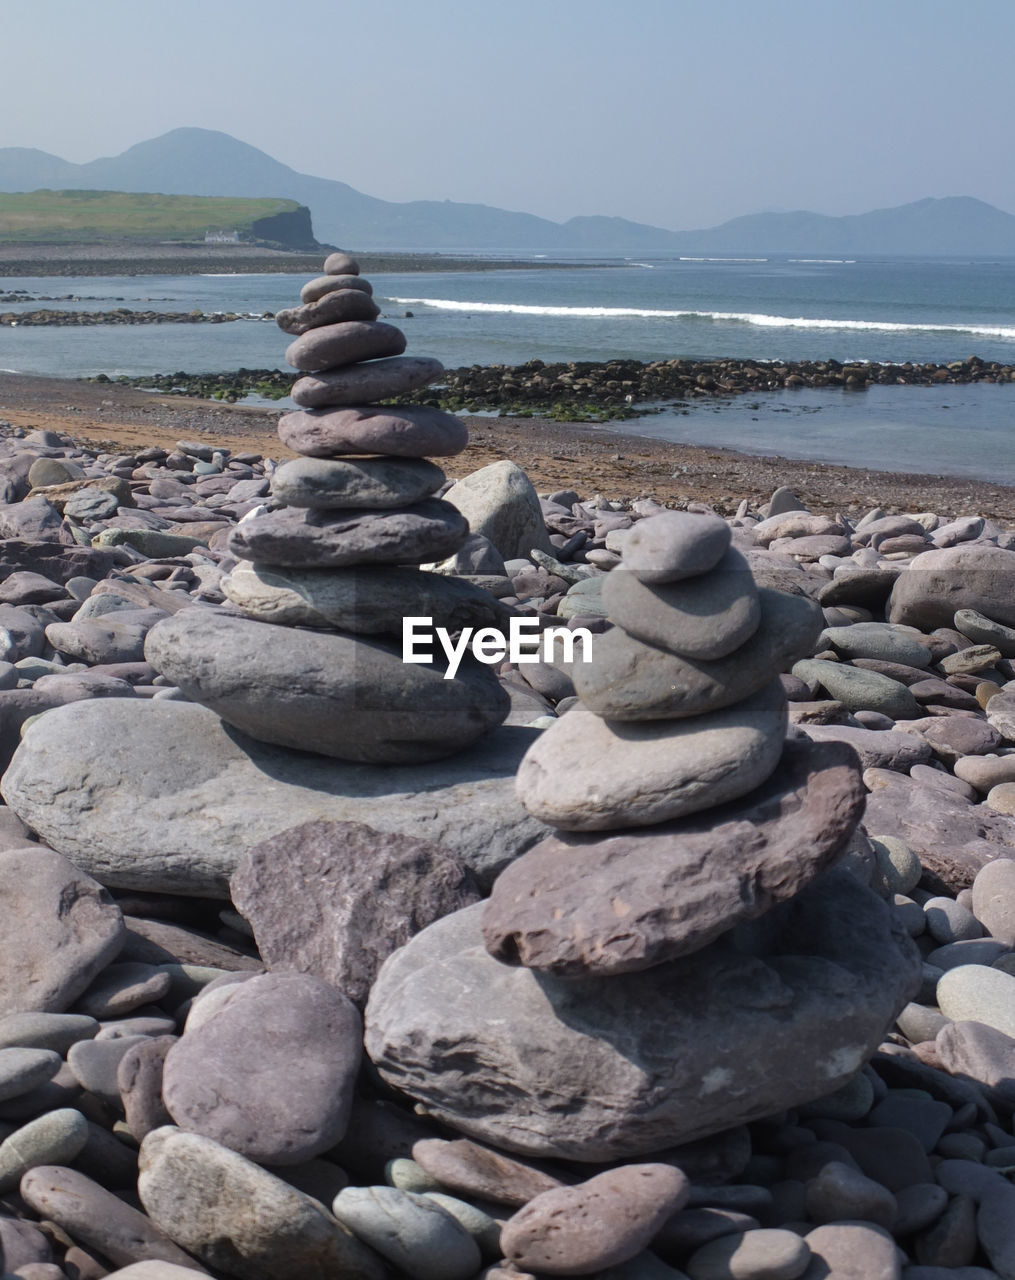 Stacked stones at beach against clear sky during sunny day